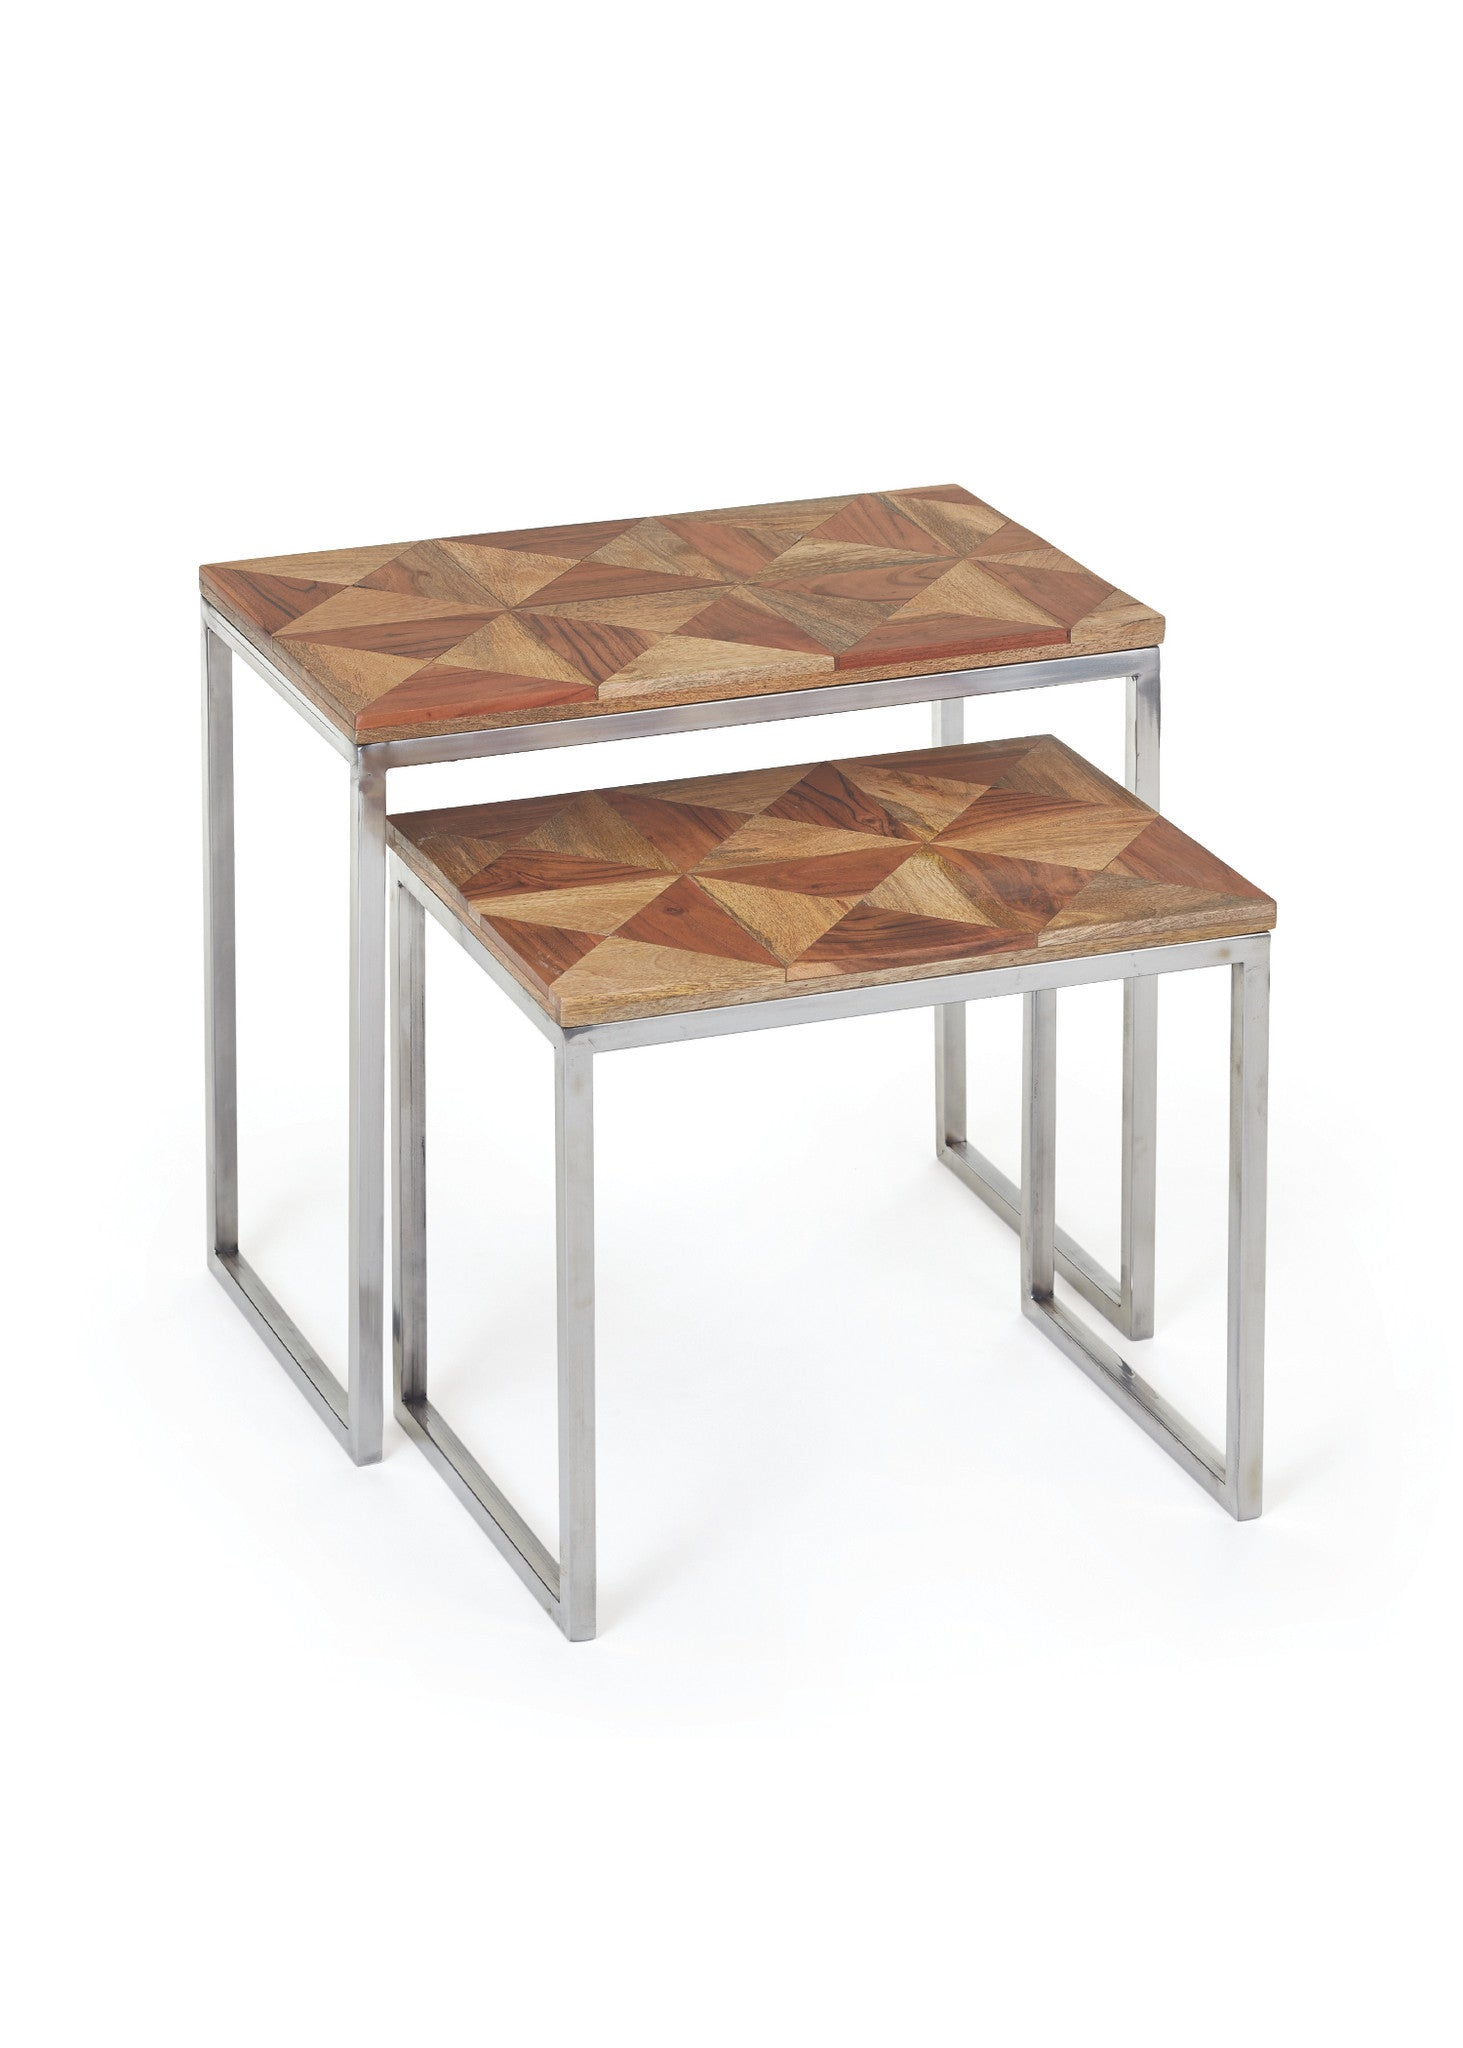 Cheshire Nesting Tables with Natural Parquet Wood Top on Polished Nick